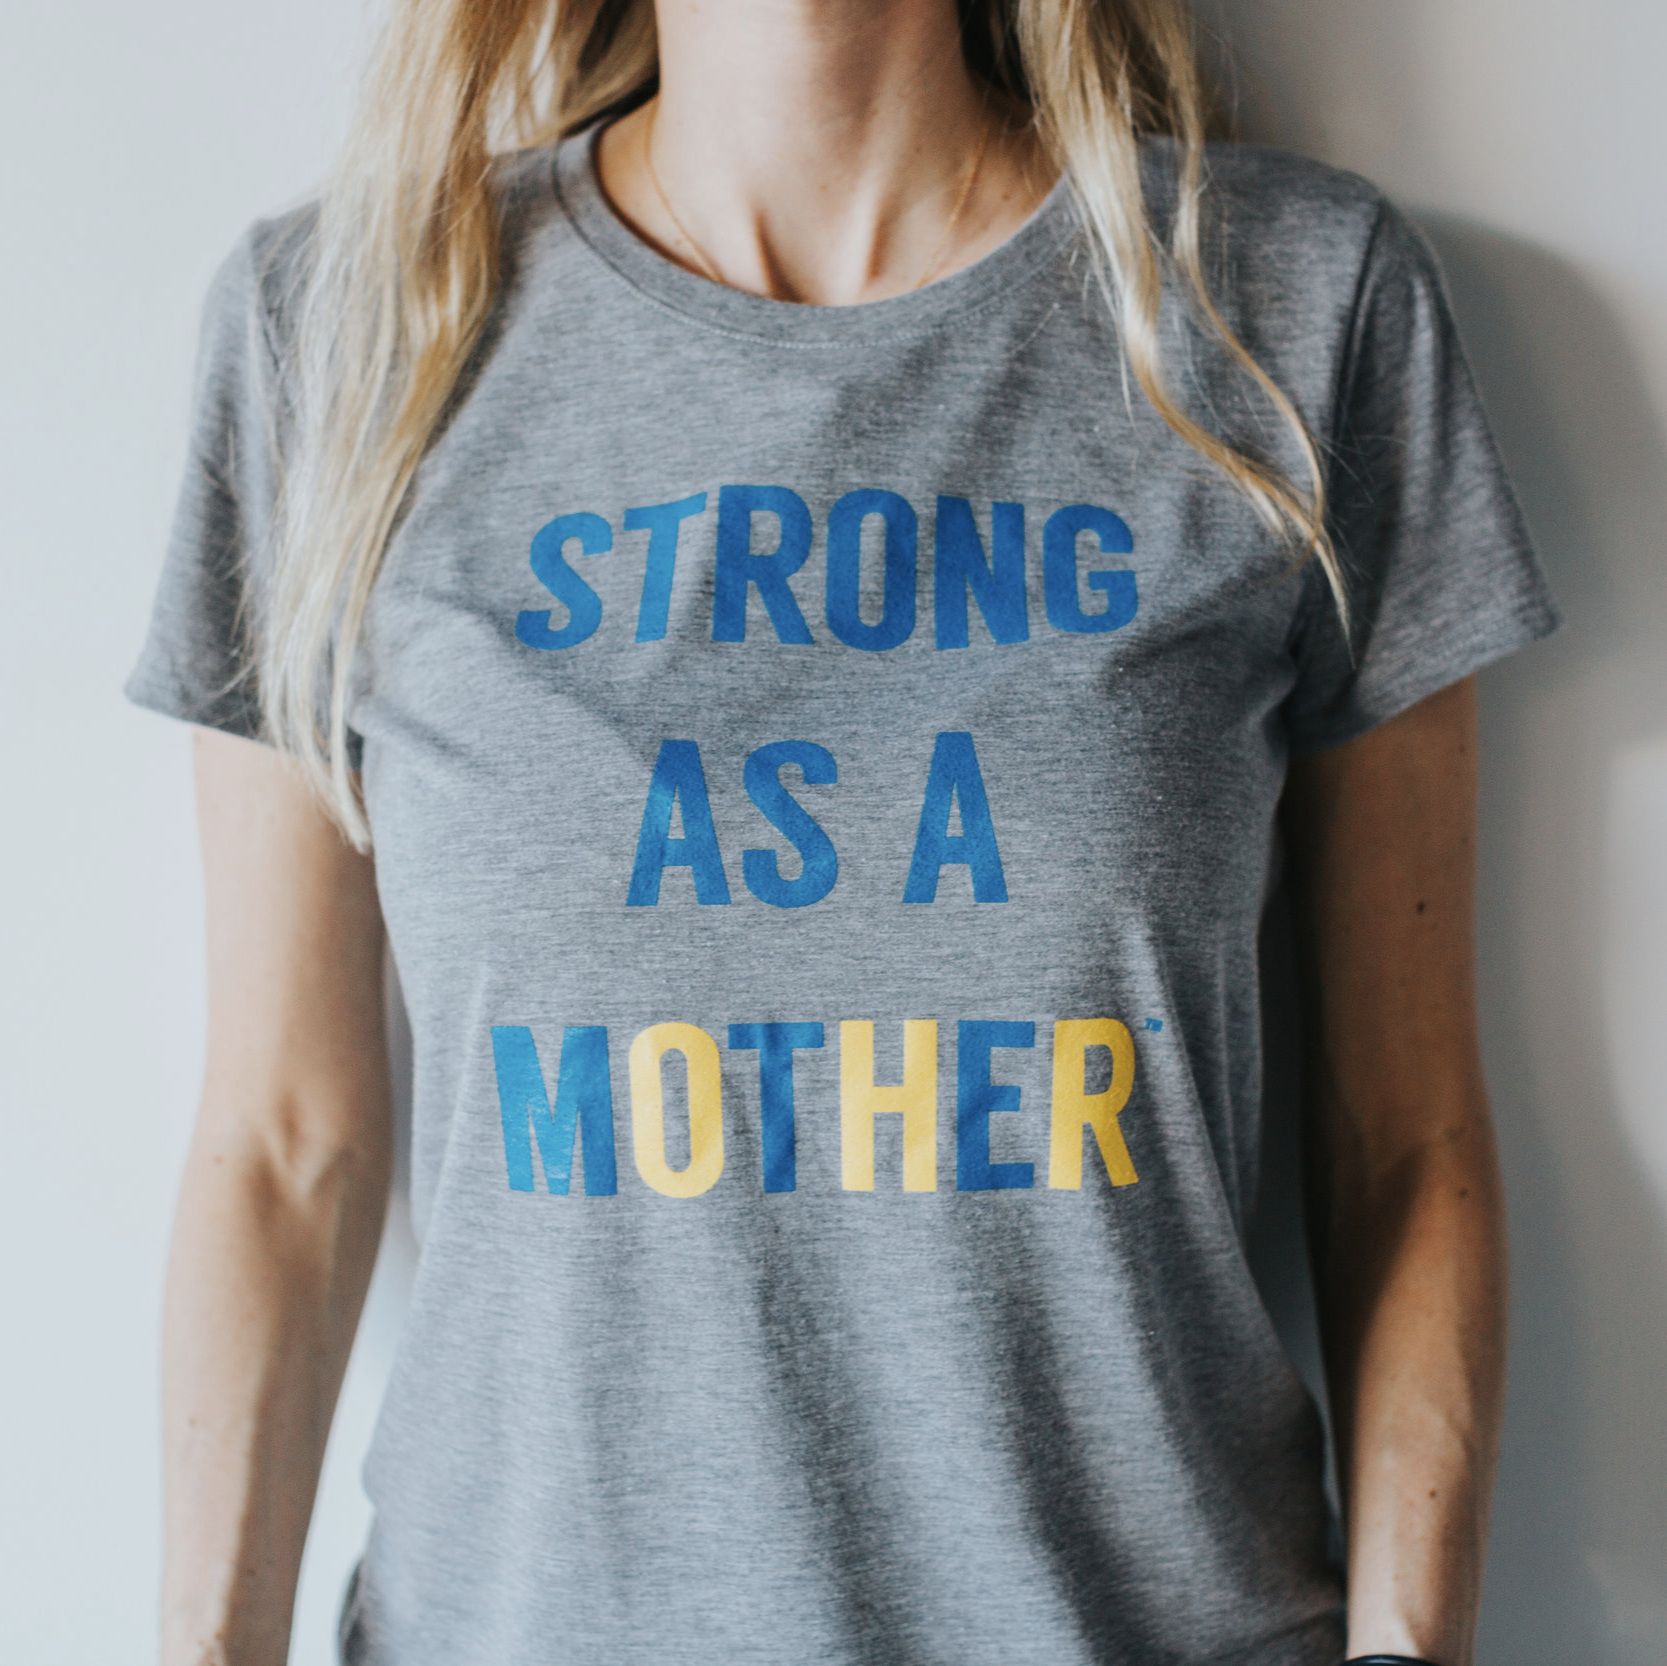 STRONG AS A MOTHER - T shirts